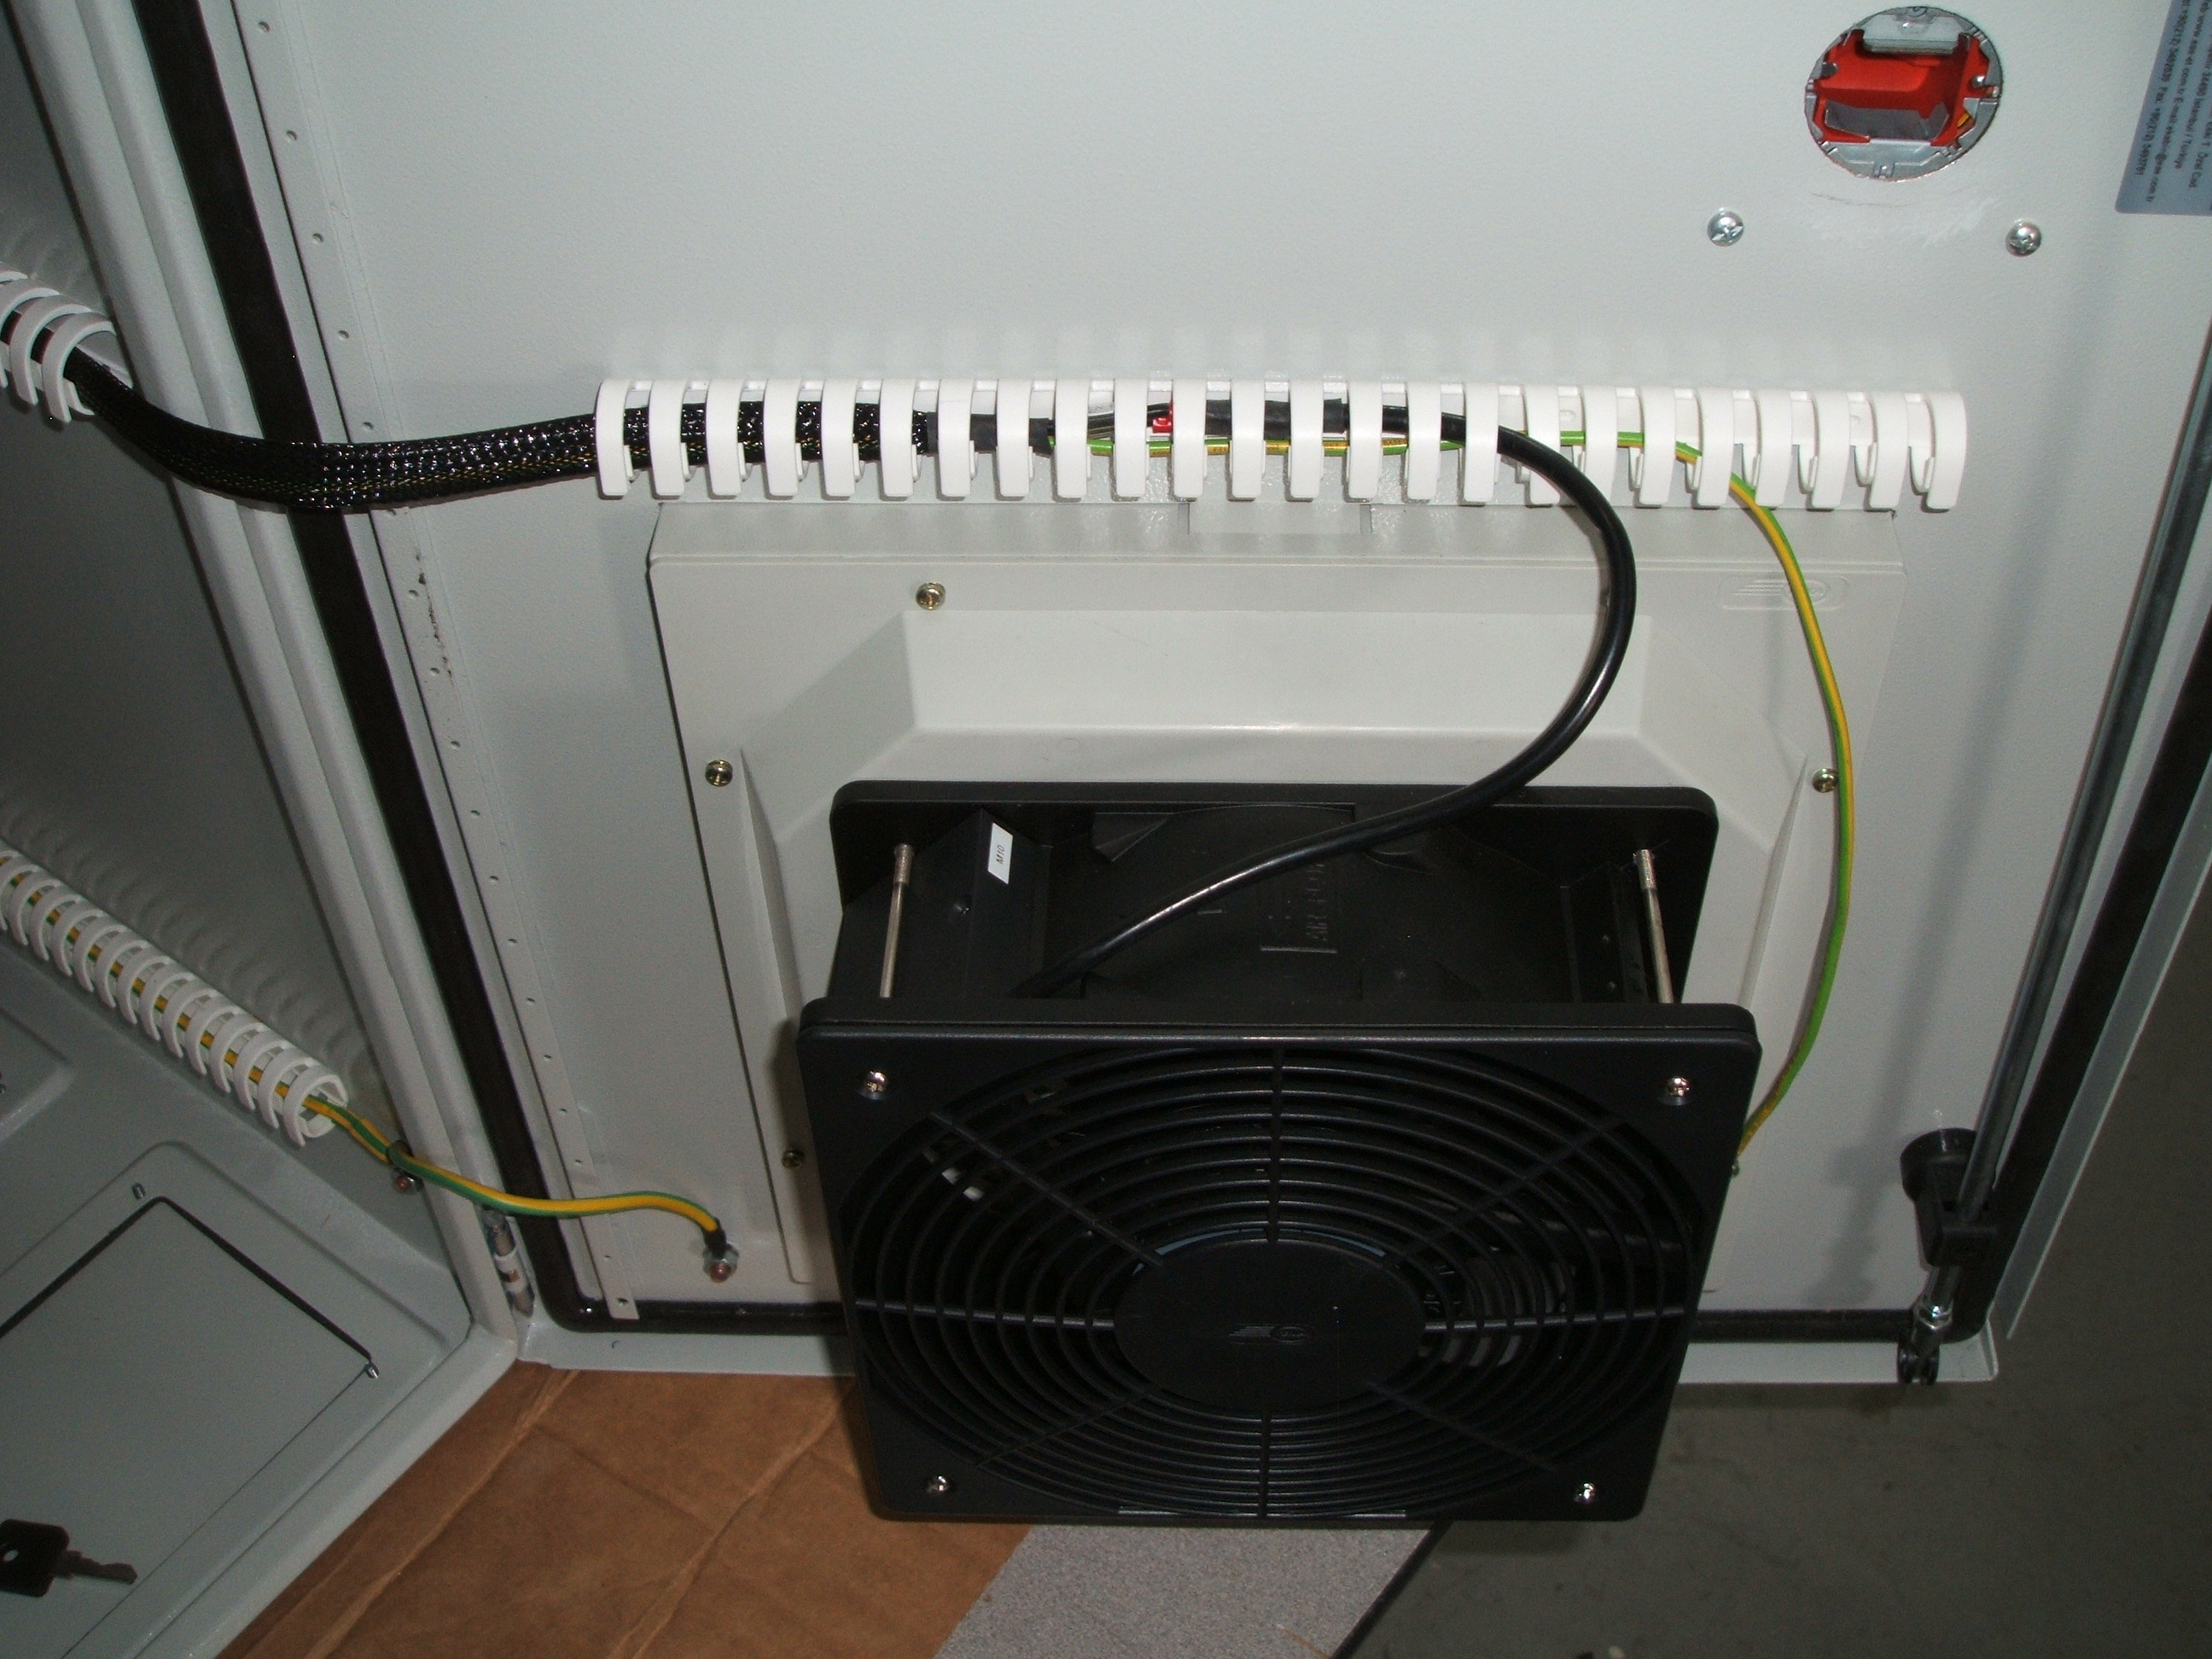 Panel Cooling Systems